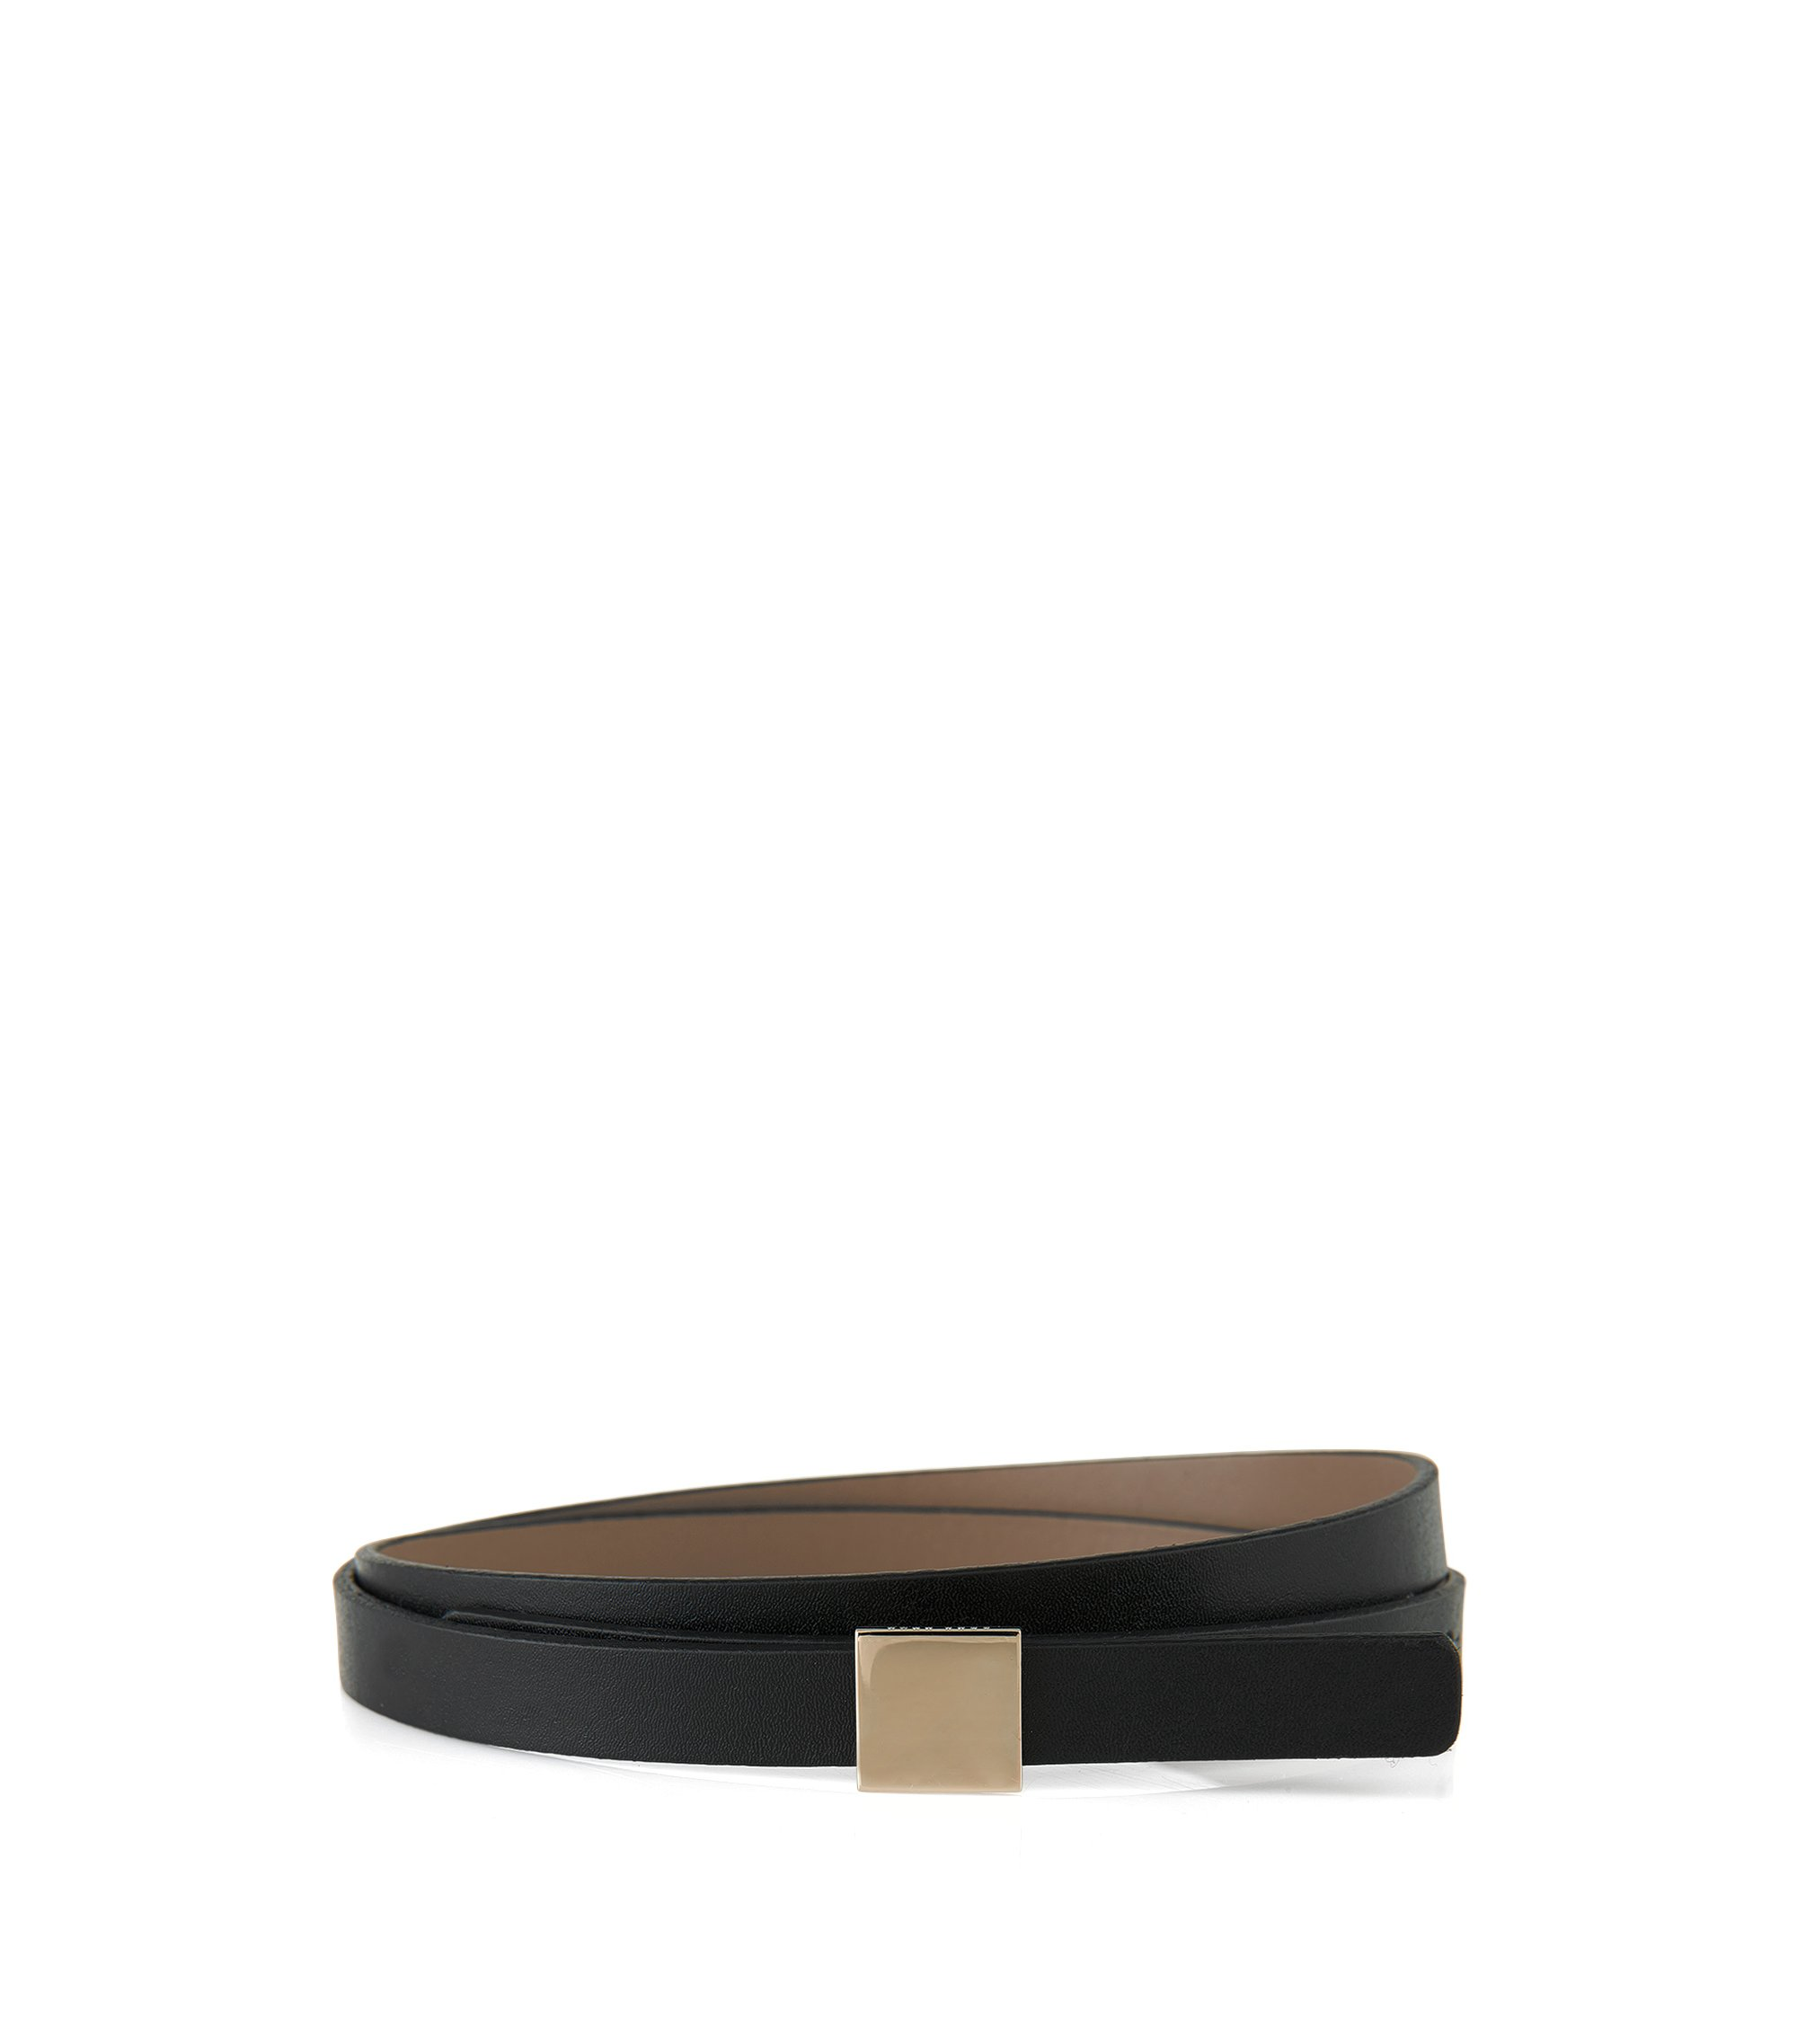 Leather belt with block hardware closure, Black